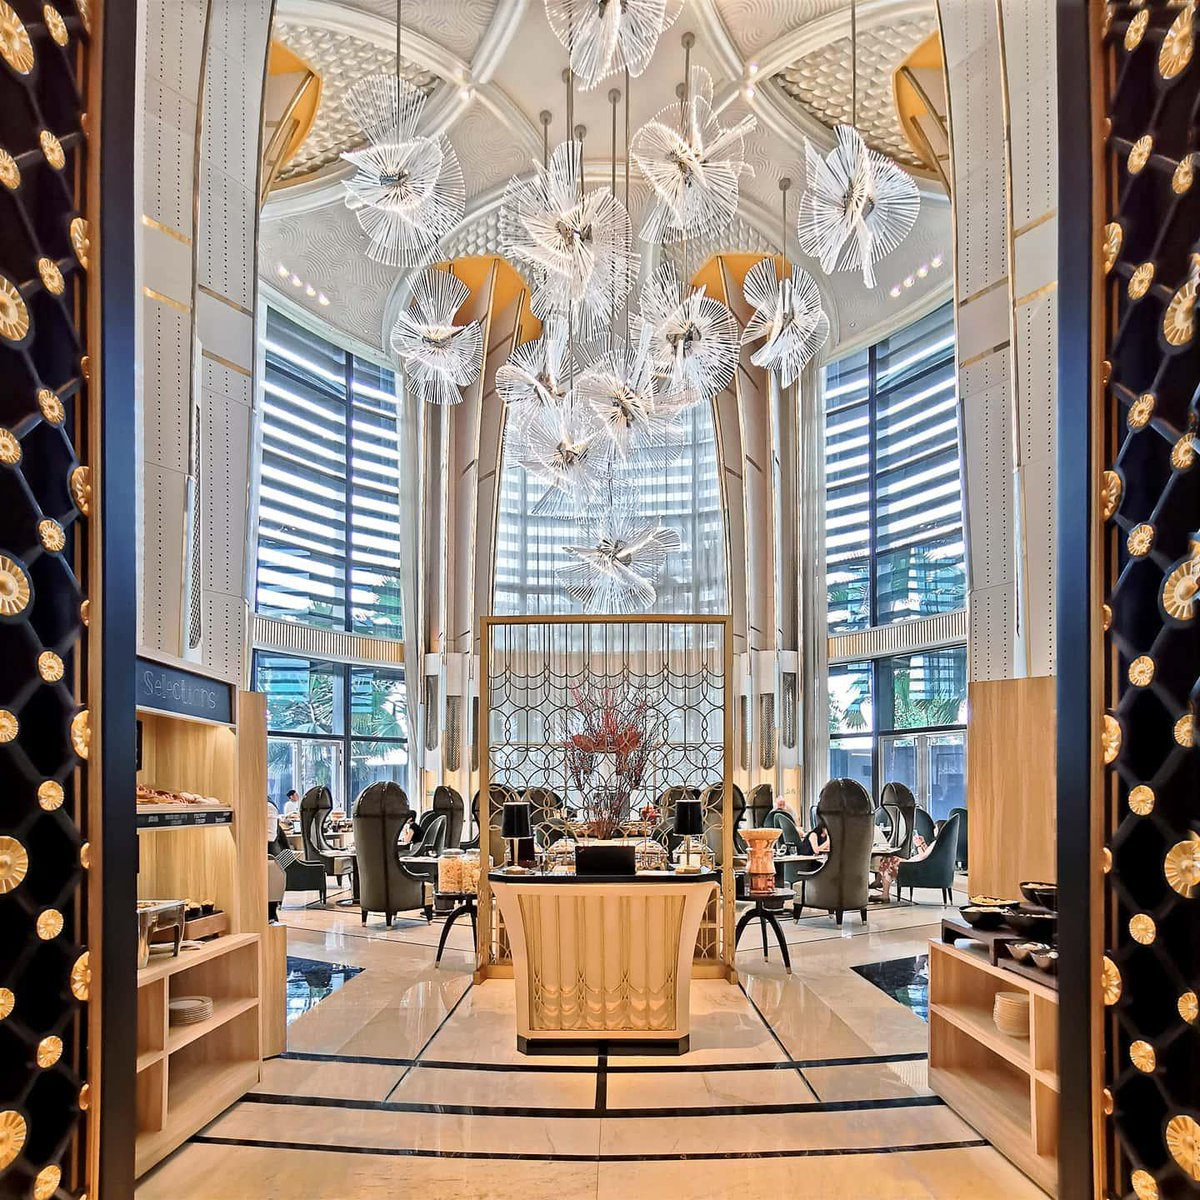 With 19th-century French art-deco touches and a glittering Lasvit chandelier, breakfast at @FSJakarta's Palm Court is an experience worth daydreaming about. 😍 📷: eater. ph #Jakarta #DreamWithFS https://t.co/mKiOuM0rNJ